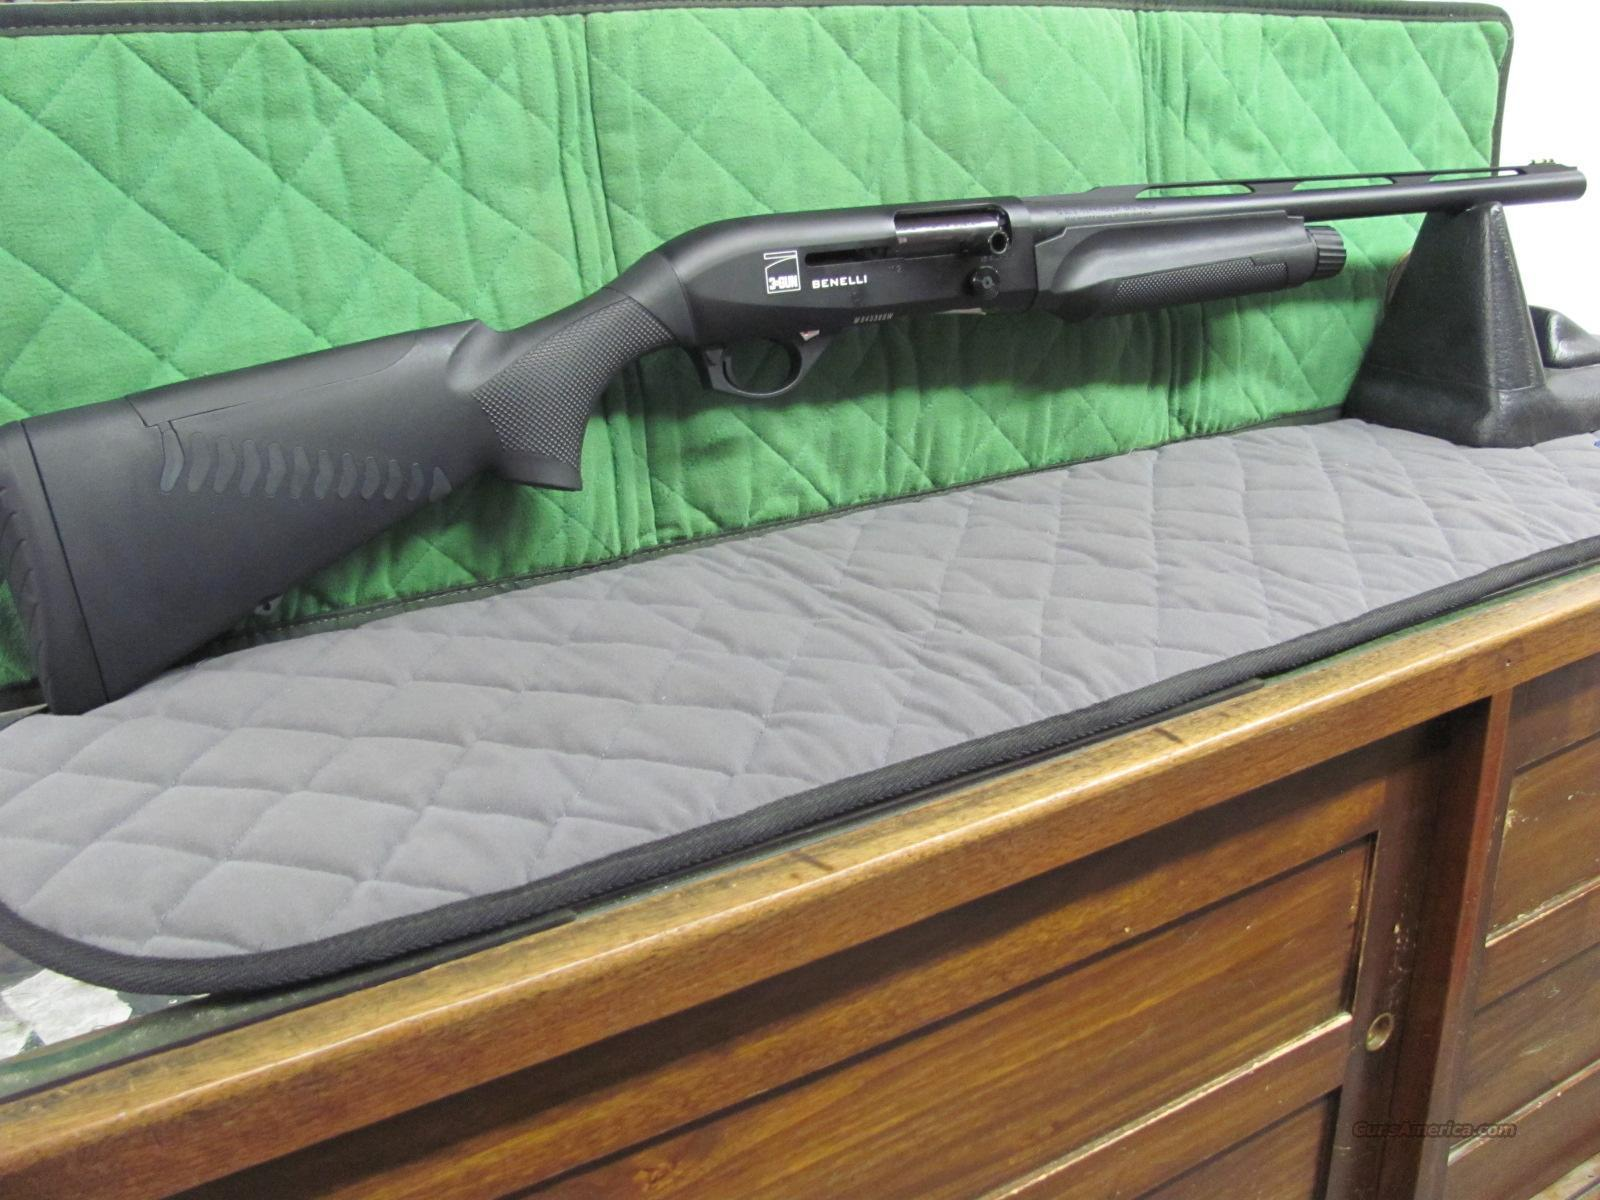 Benelli m2 tactical reviews - Benelli M2 3 Gun Edition Performance Shop 12 Ga New Guns